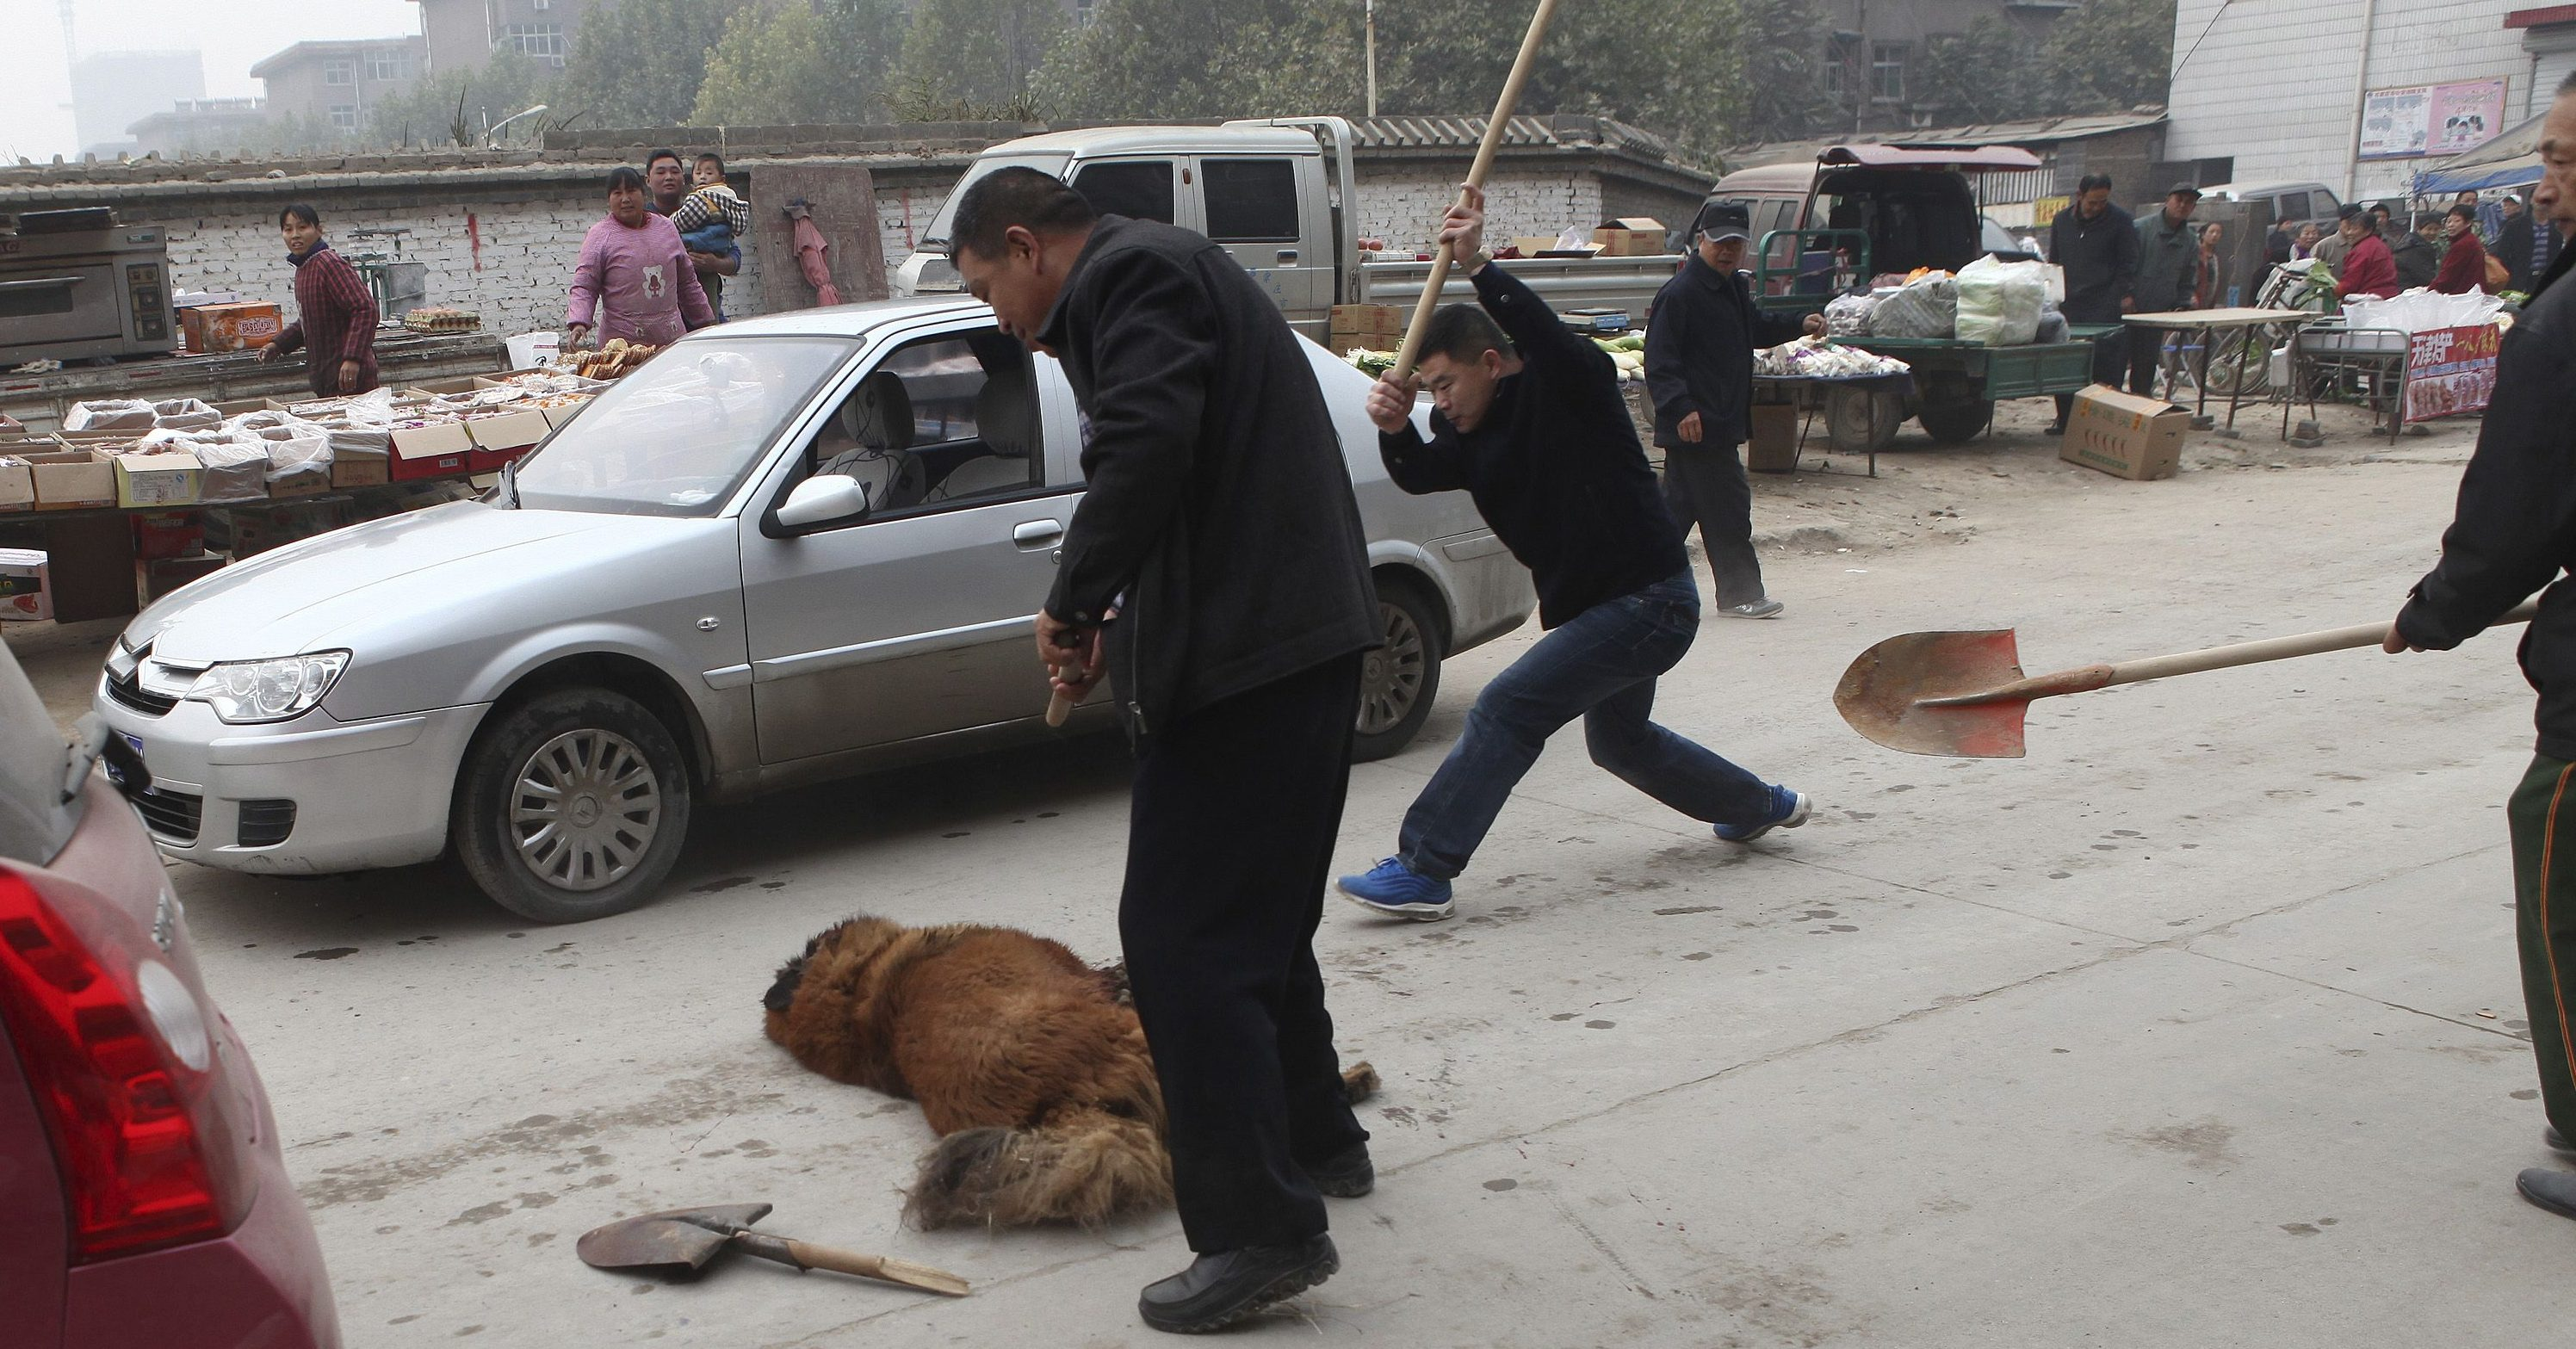 Security guards beat a Tibetan mastiff with shovels after it and another Tibetan mastiff attacked and injured several people, at a residential compound in Shijiazhuang, Hebei province October 30, 2013. The two dogs were restrained by more than 40 security guards and 20 police officers on Wednesday morning. Several gunshots were fired in the incident that lasted 30 minutes, according to local media. The dog in this picture was taken alive by the authorities while the other dog died after being shot by police and beaten by security guards. Picture taken October 30, 2013.